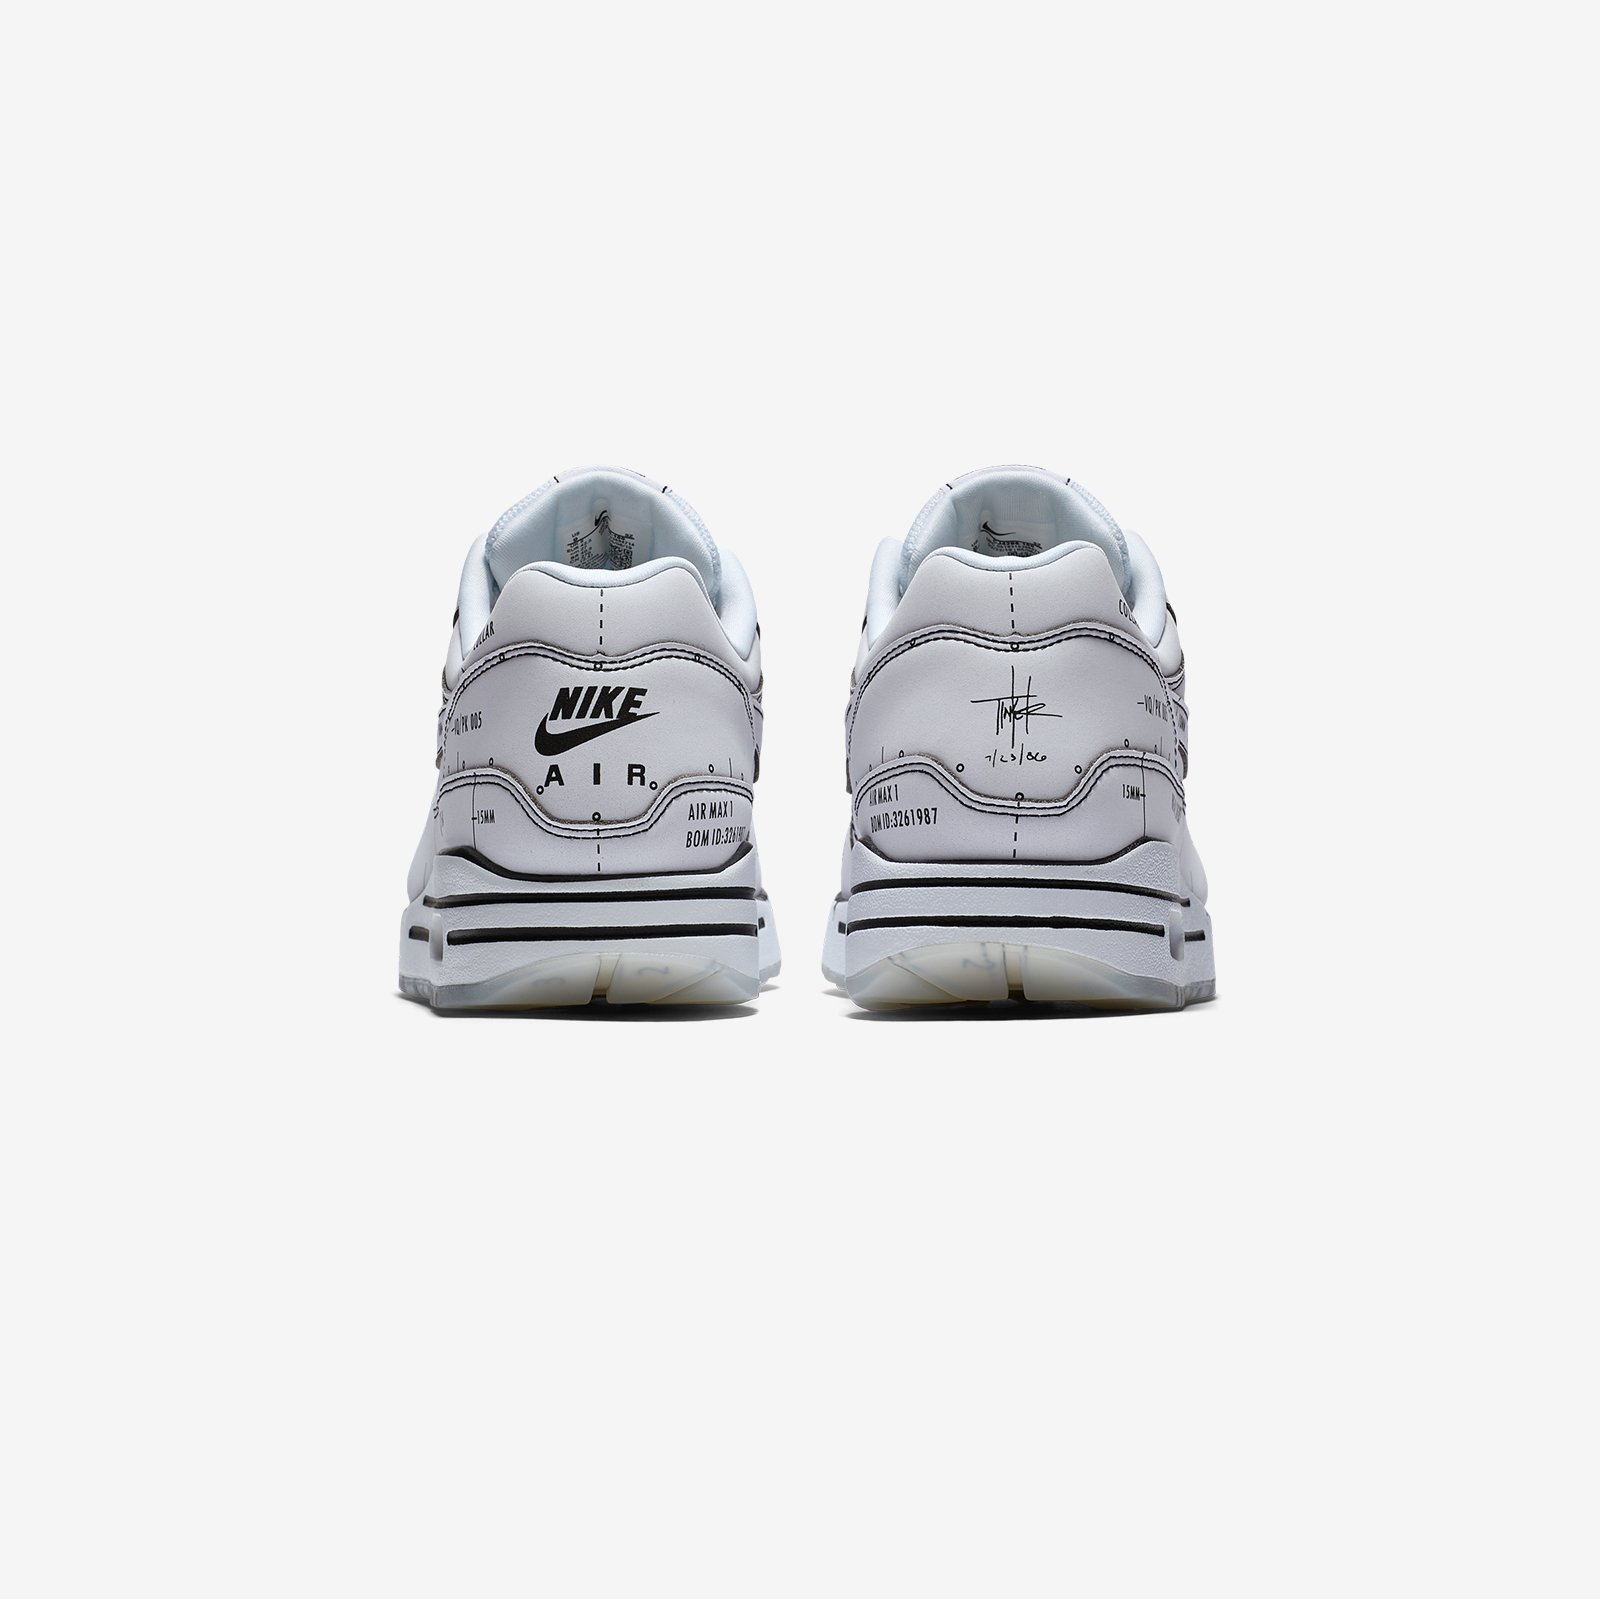 Nike Air Max 1 Sketch To Shelf Cj4286 100 Sneakersnstuff